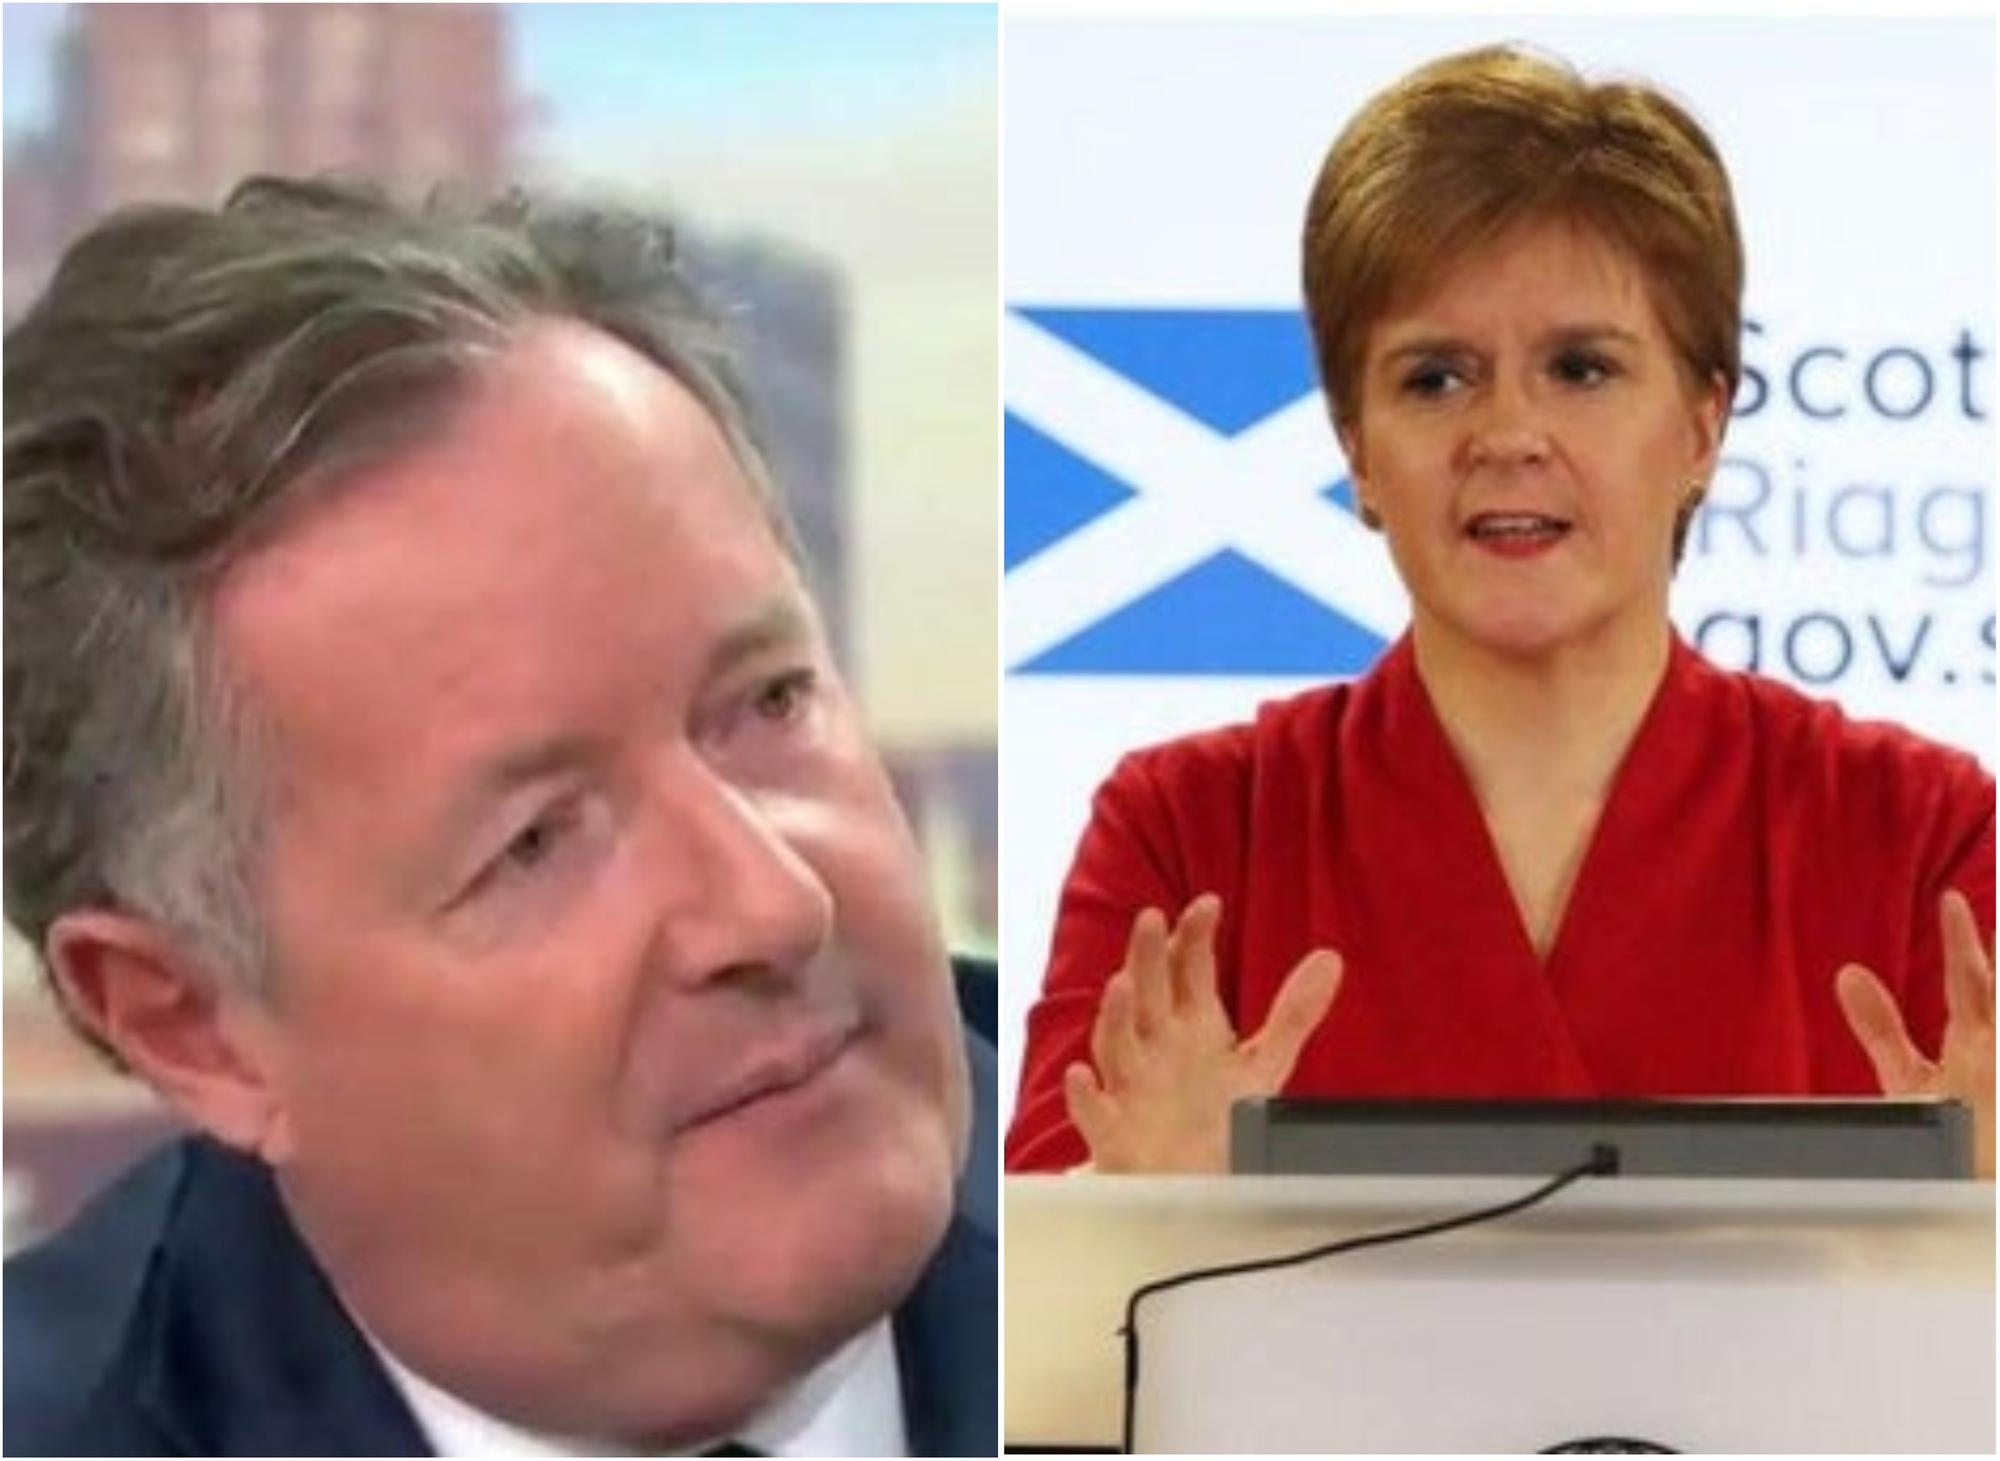 Nicola Sturgeon hits back at Piers Morgan over claim she's dodging interview on Catherine Calderwood situation